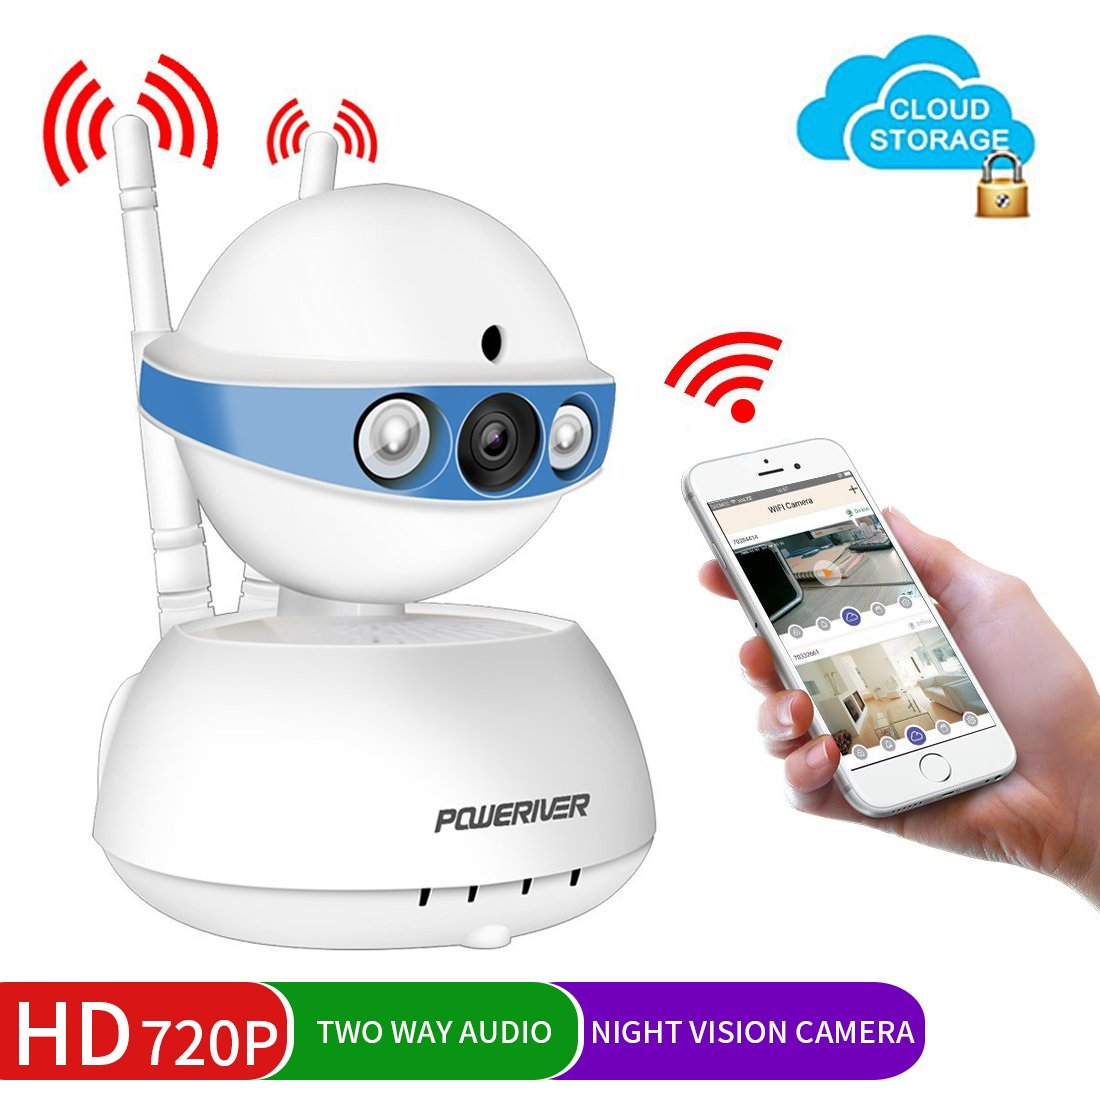 Security Camera,POWERIVER WiFi IP Indoor Security System with Motion Detection, Two-Way Audio & Night Vision for Baby/Pet / Front Porch Monitor, Remote Control with iOS, Android, PC App(Blue)